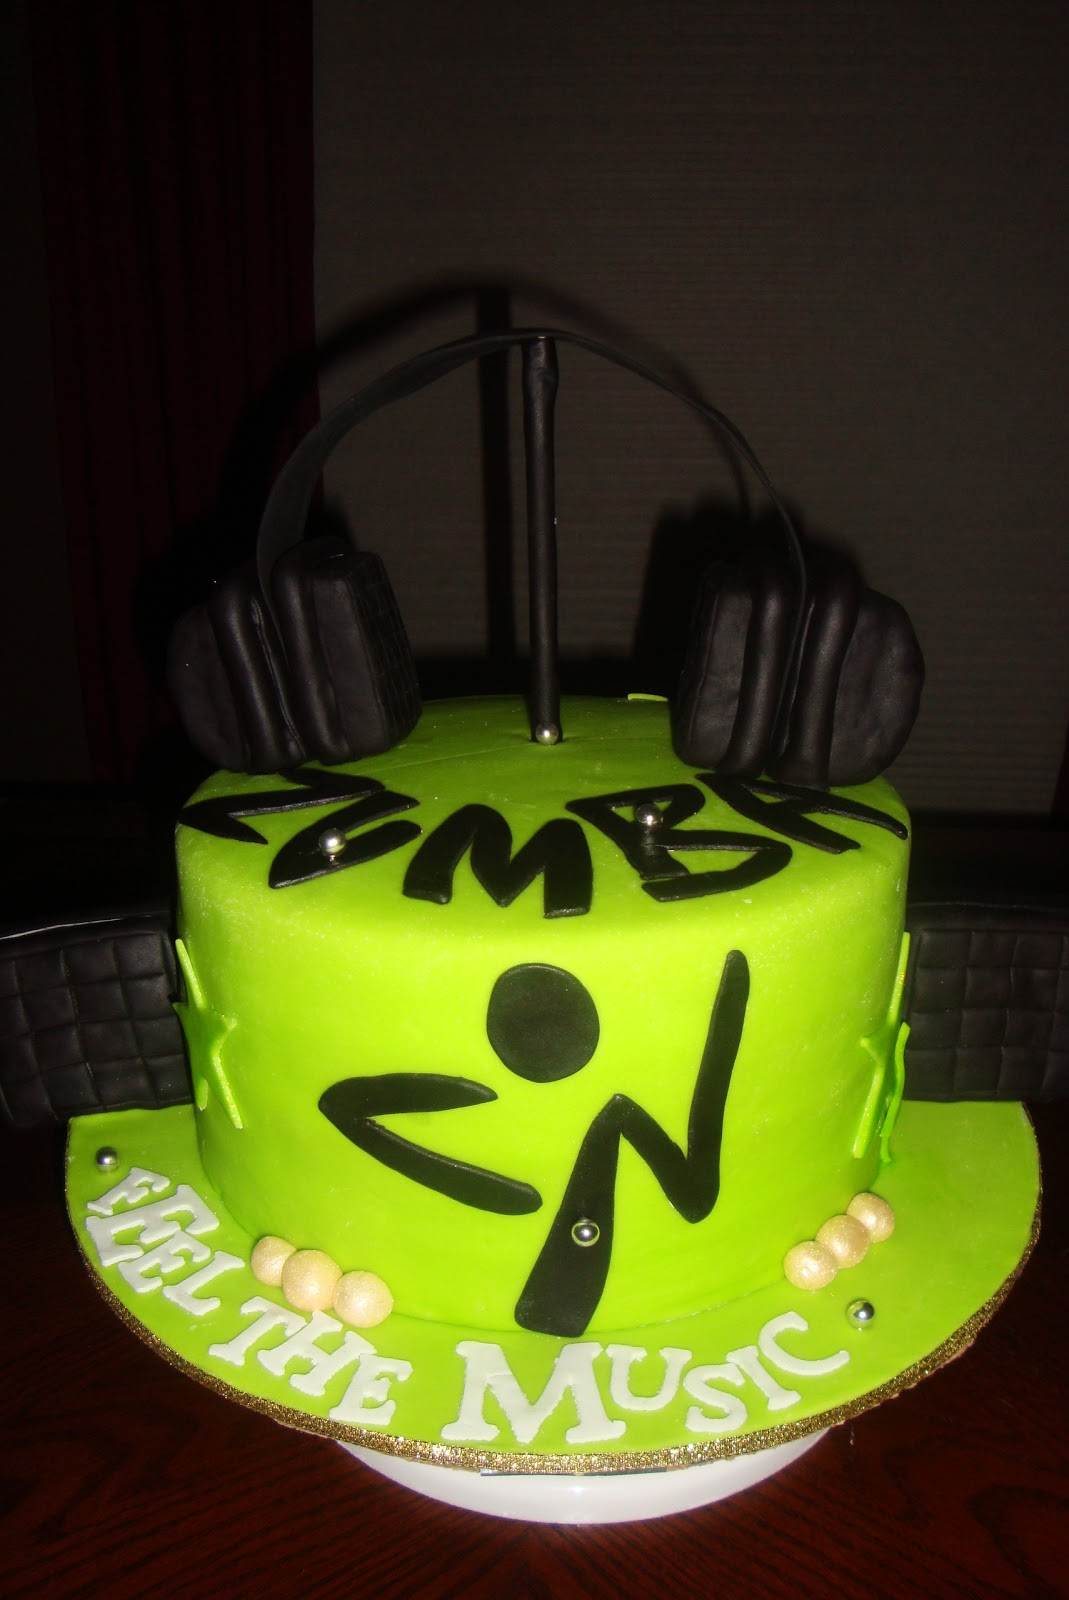 Zumba Cake Photos http://cakeobsessionsmb.blogspot.com/2011/06/zumba-it-up.html